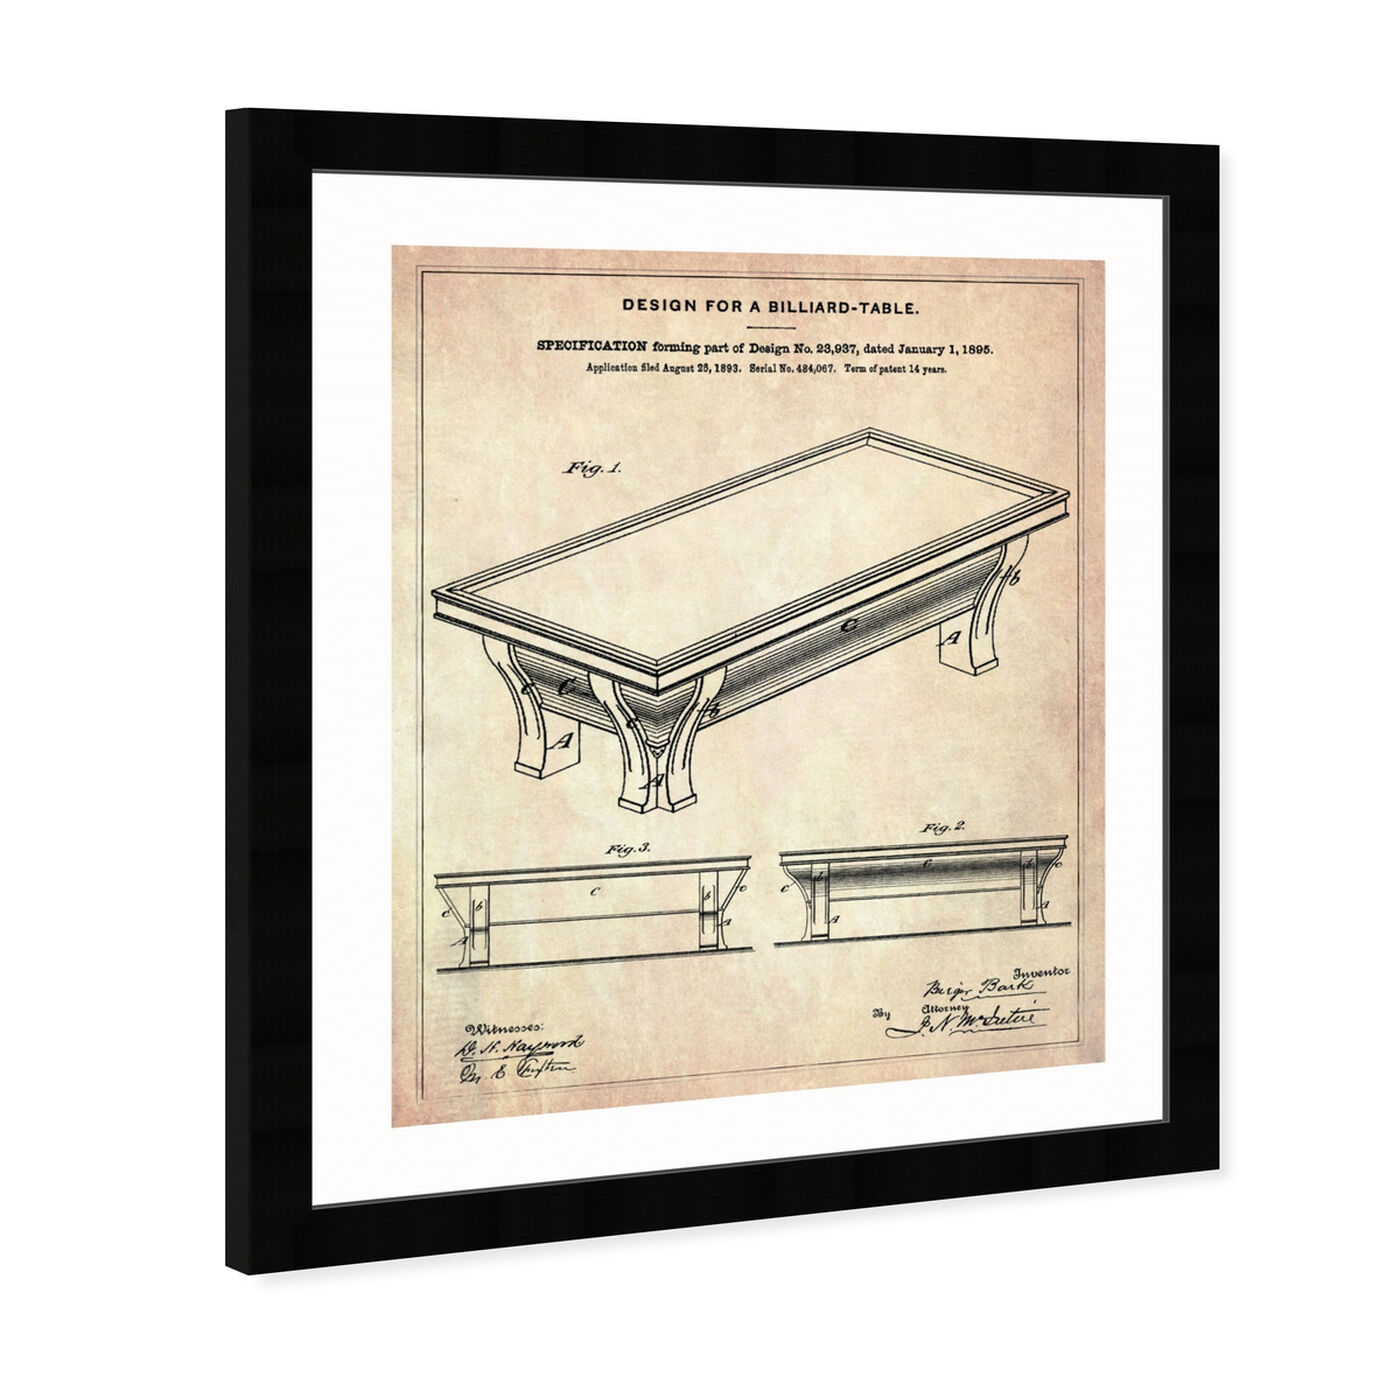 Angled view of Design for a Billiard-Table 1895 featuring entertainment and hobbies and billiards art.